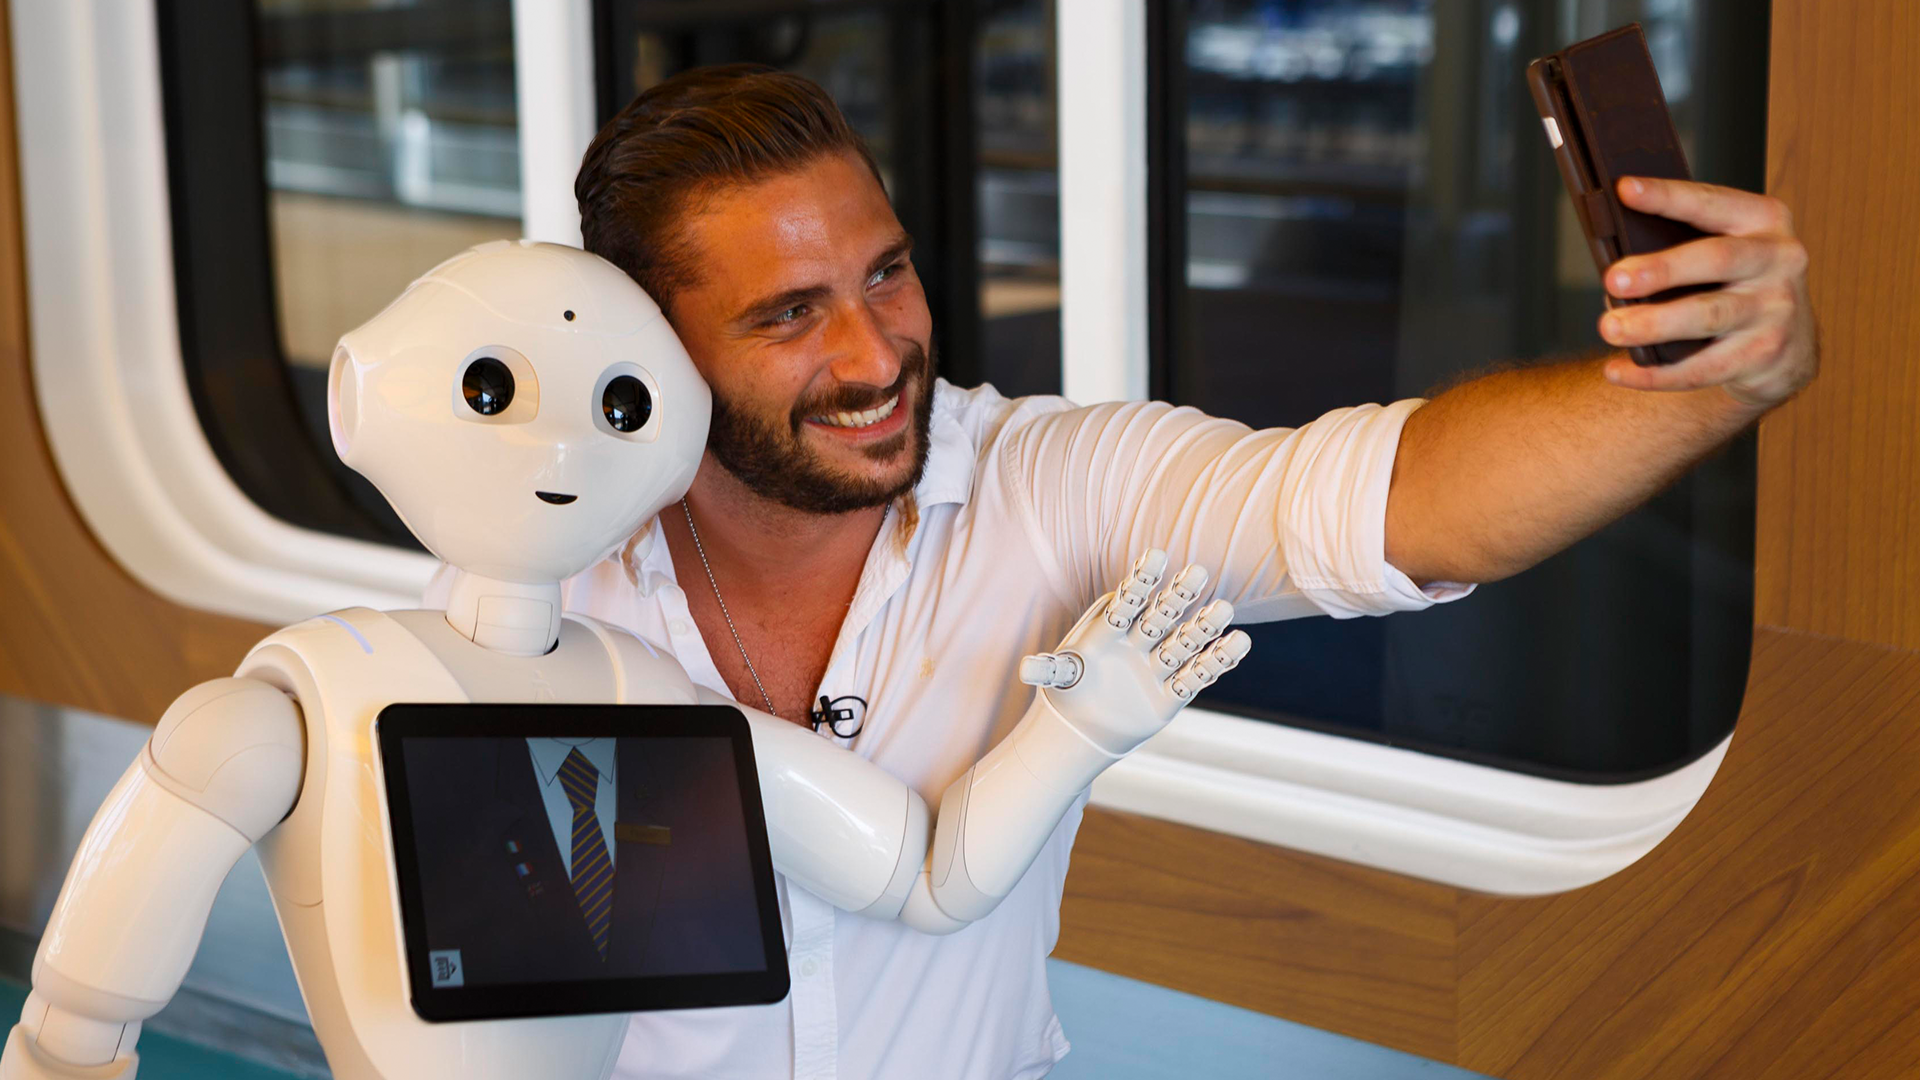 selfie with pepper